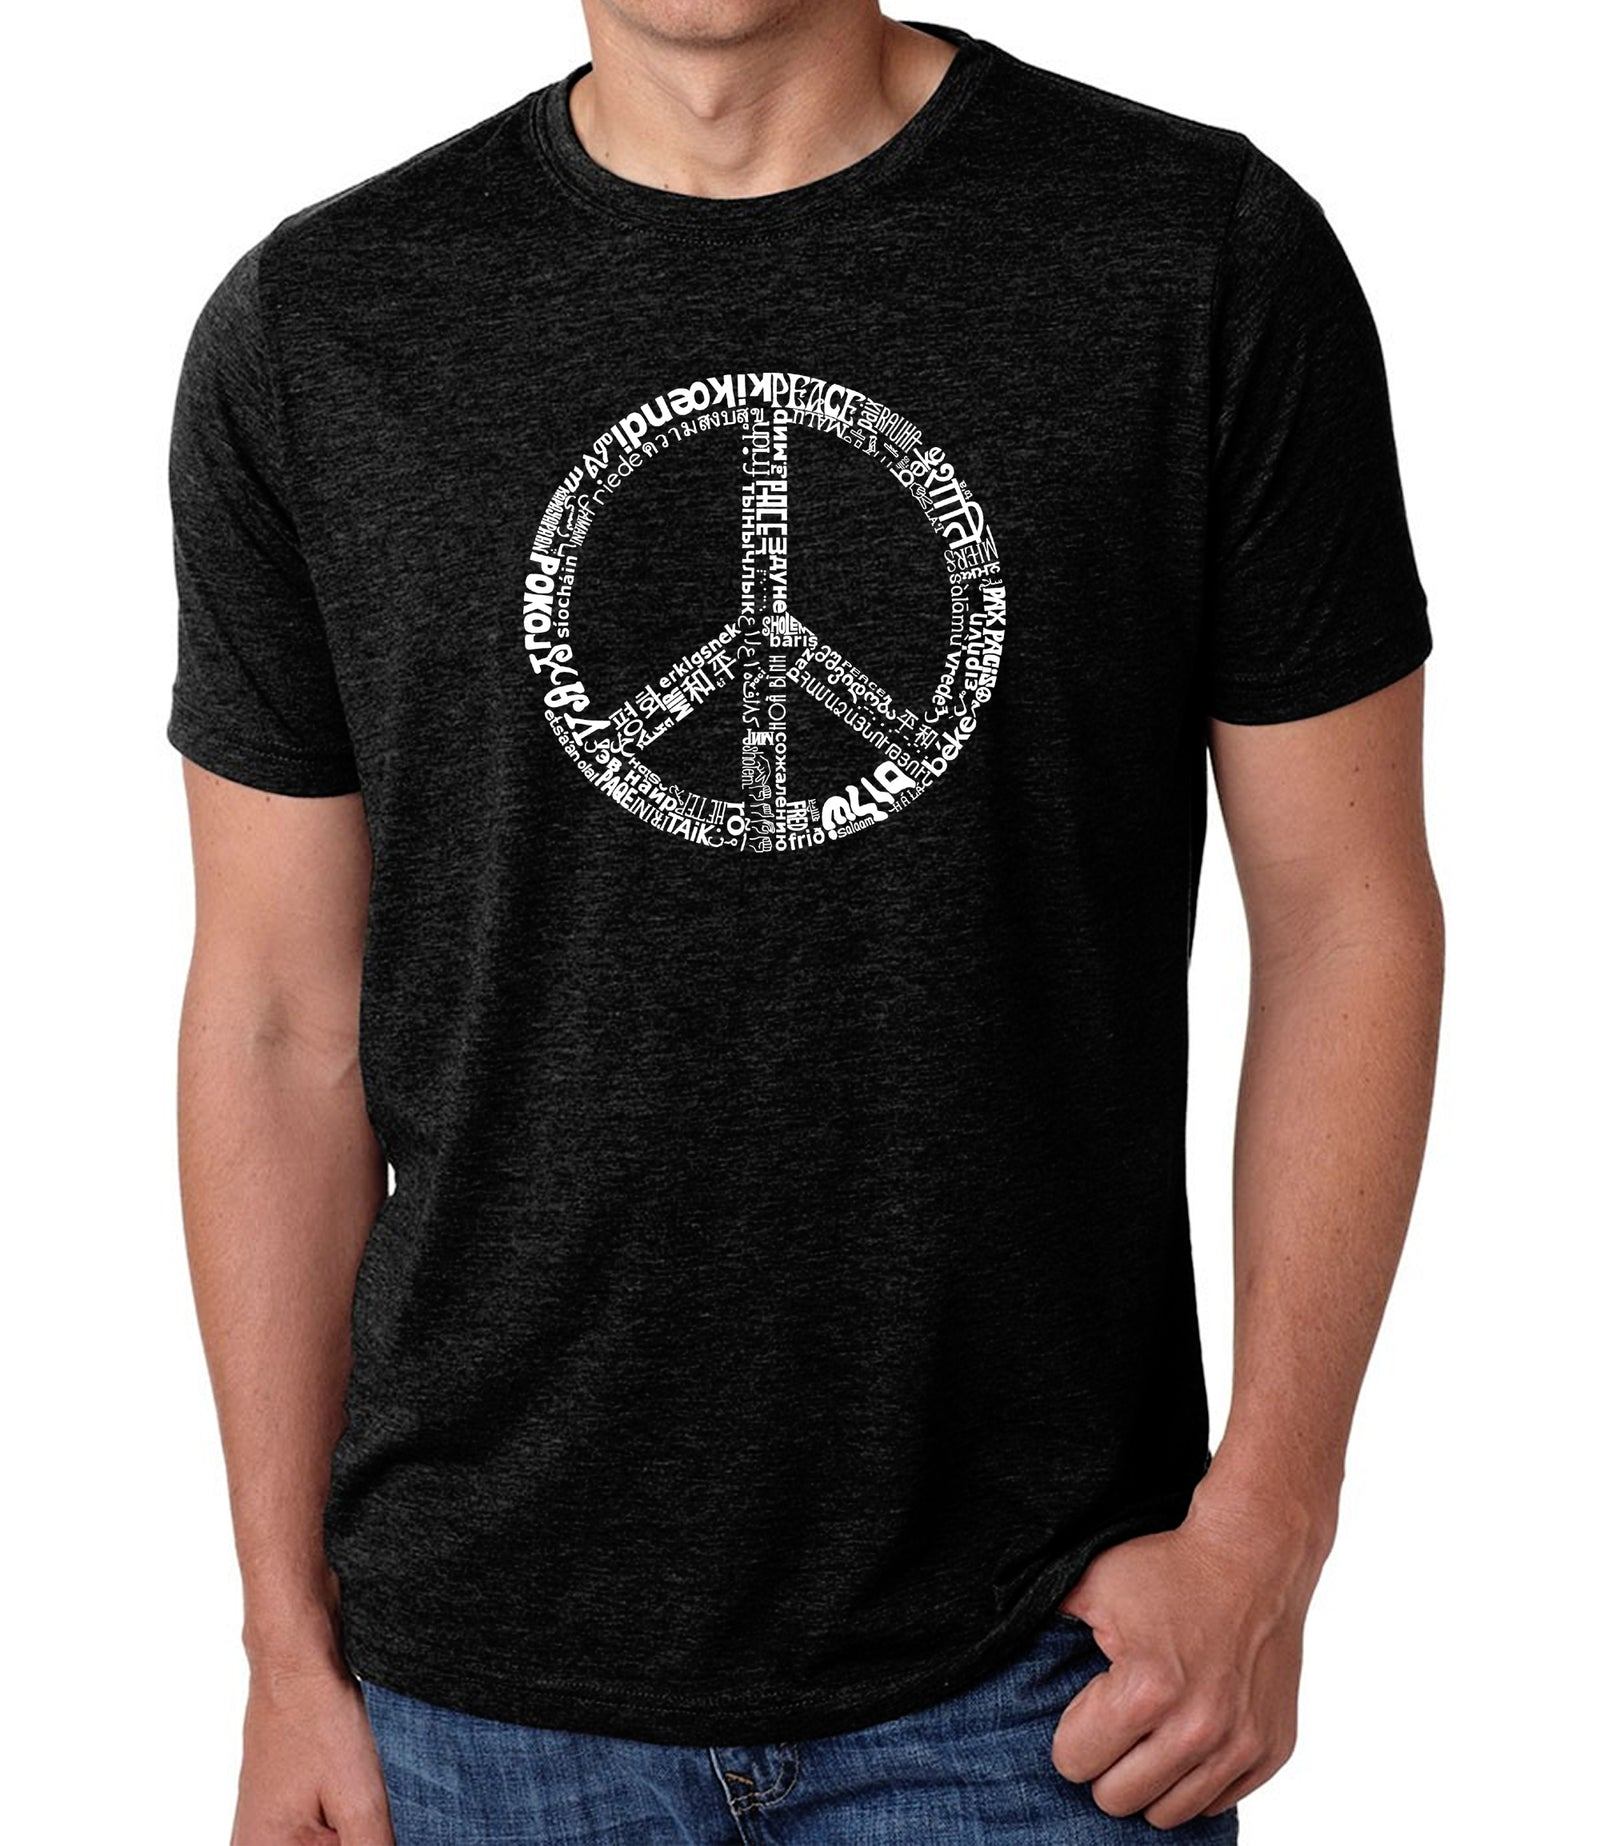 Men's Premium Blend Word Art T-shirt - THE WORD PEACE IN 77 LANGUAGES